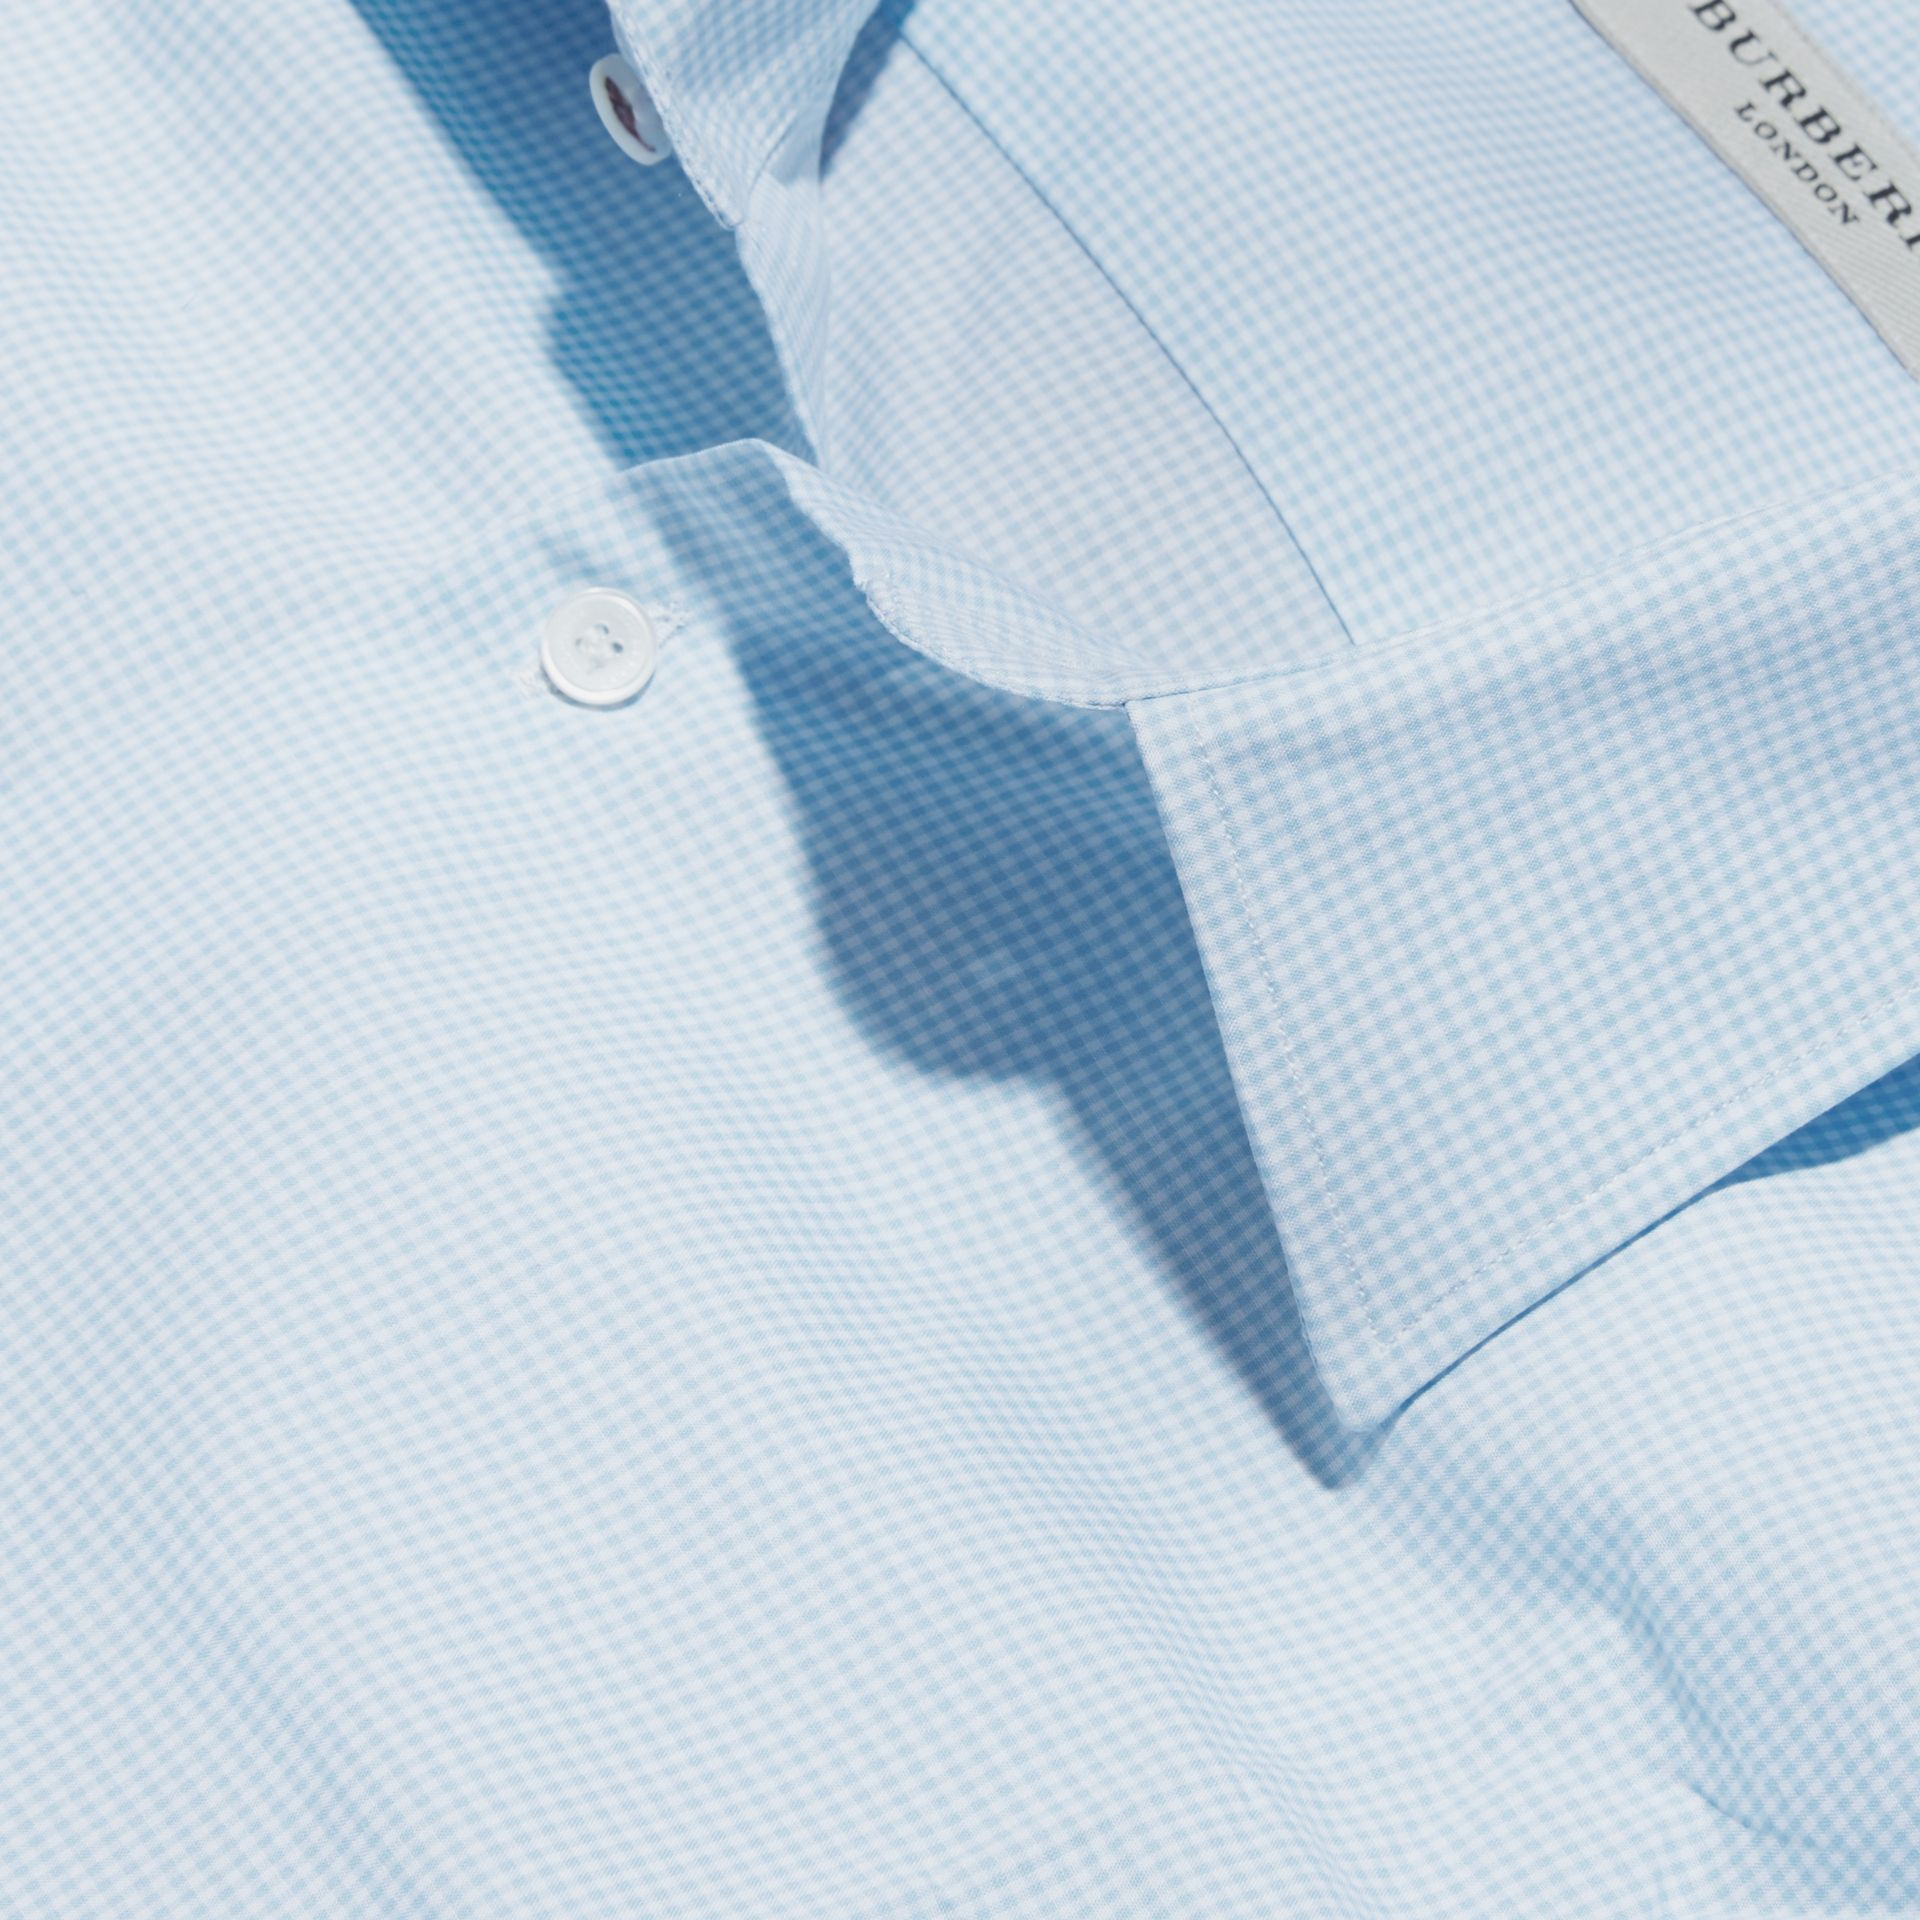 Slim Fit Gingham Cotton Poplin Shirt in City Blue - Men | Burberry - gallery image 2